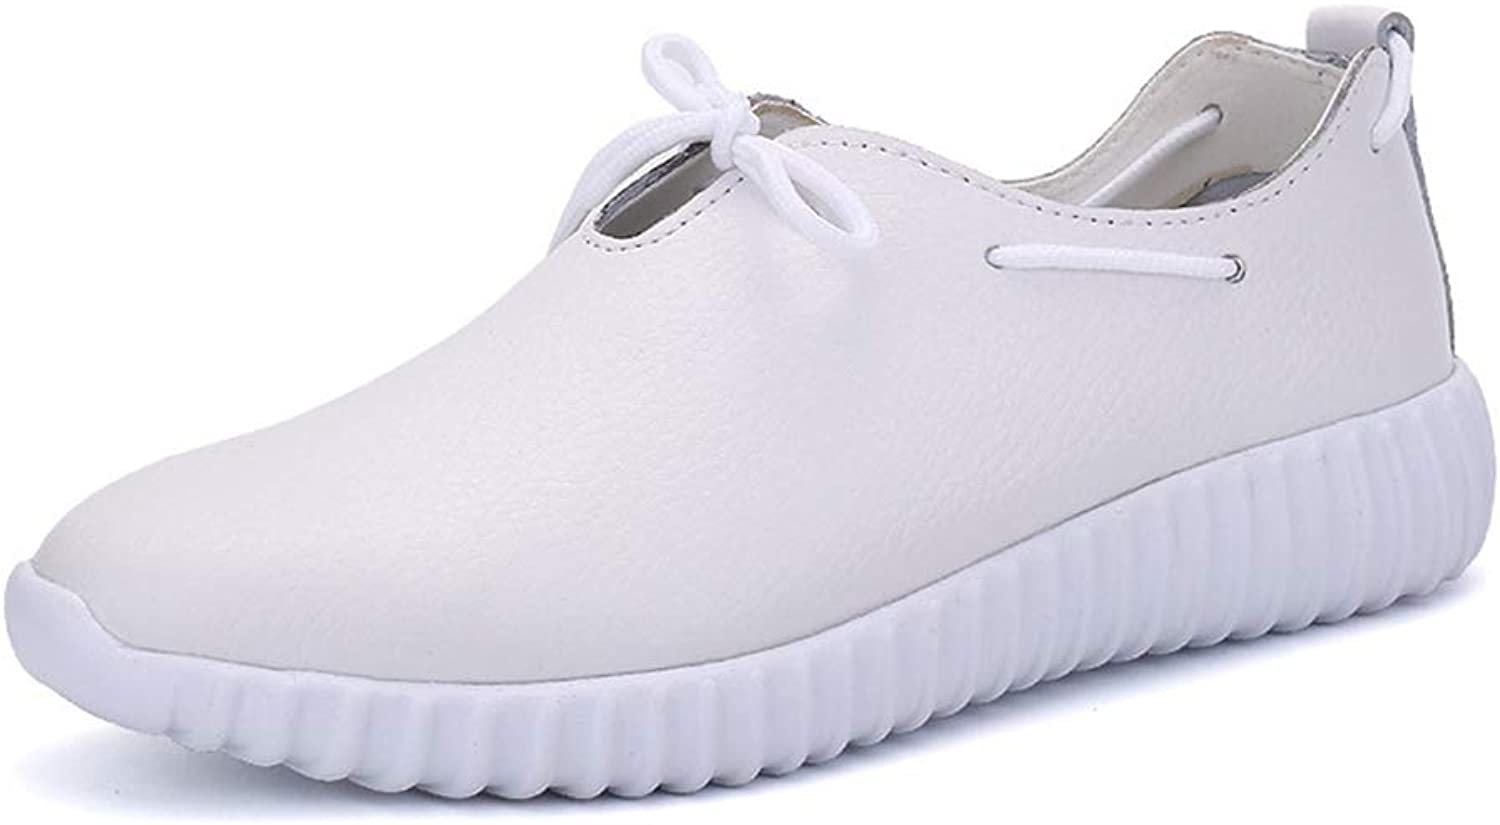 Women's Fashion Sneakers Soft Flats Casual Loafers Breathable Walking shoes Slip On Lazy shoes